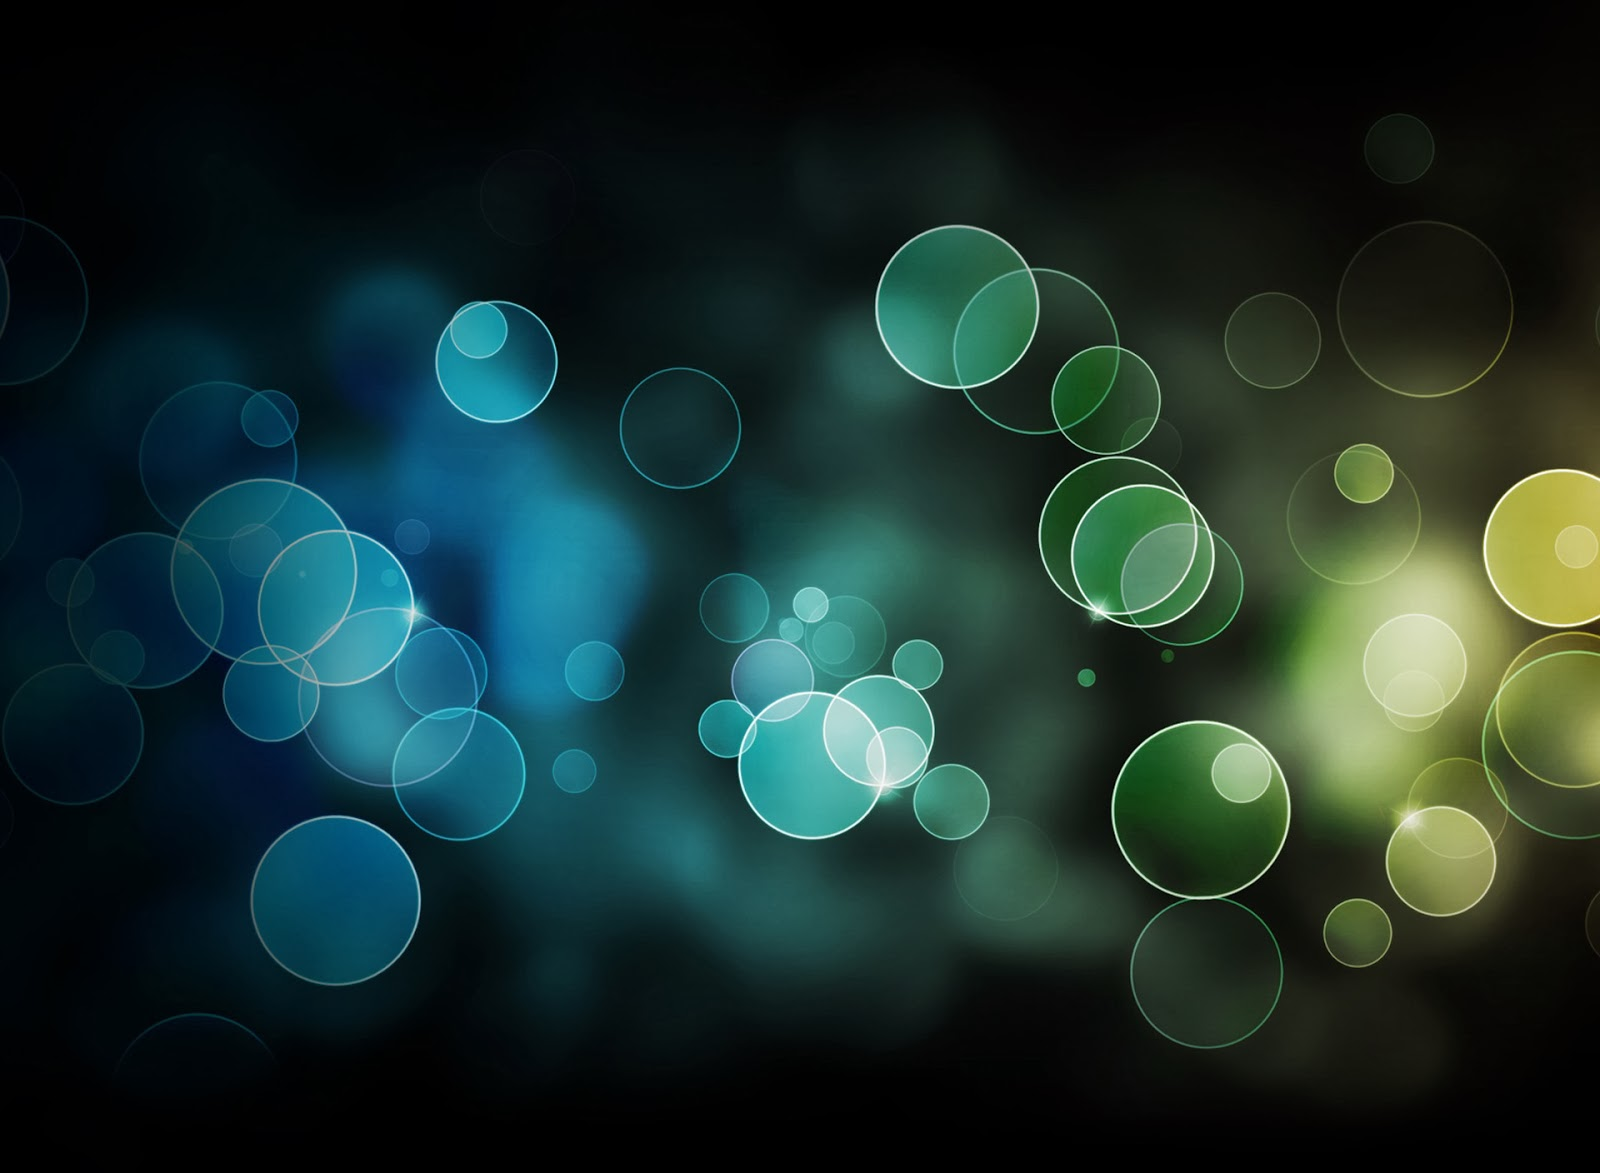 Wallpaper For Galaxy Tab: Free Download Hd Wallpaper For Android Galaxy Tab